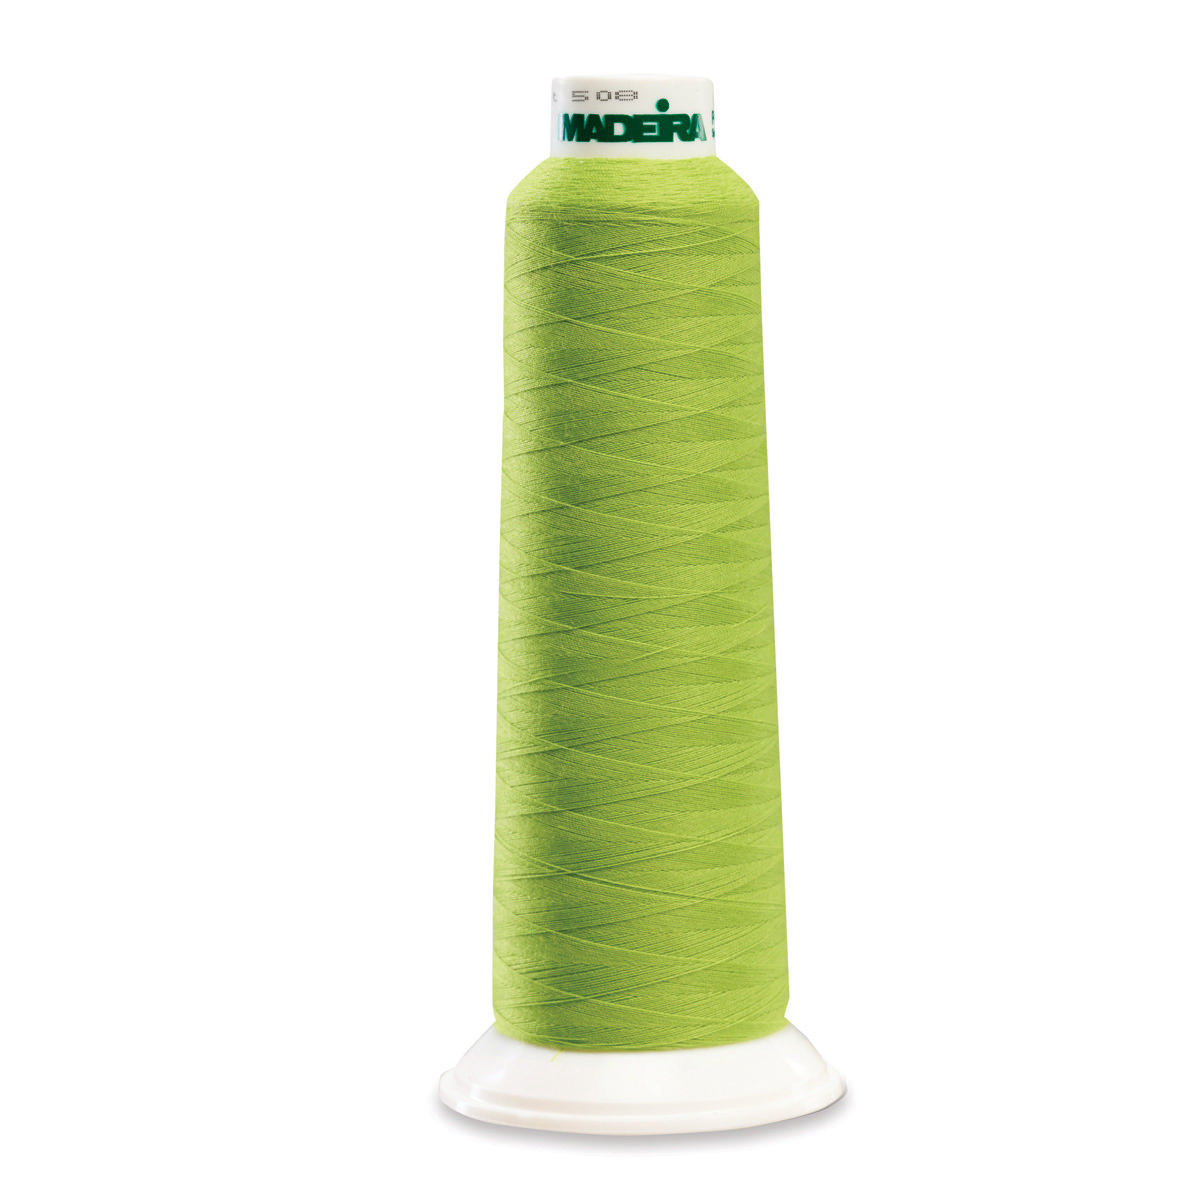 POLY SOUR APPLE 2000YD SERGER THREAD MADEIRA AEROLOCK